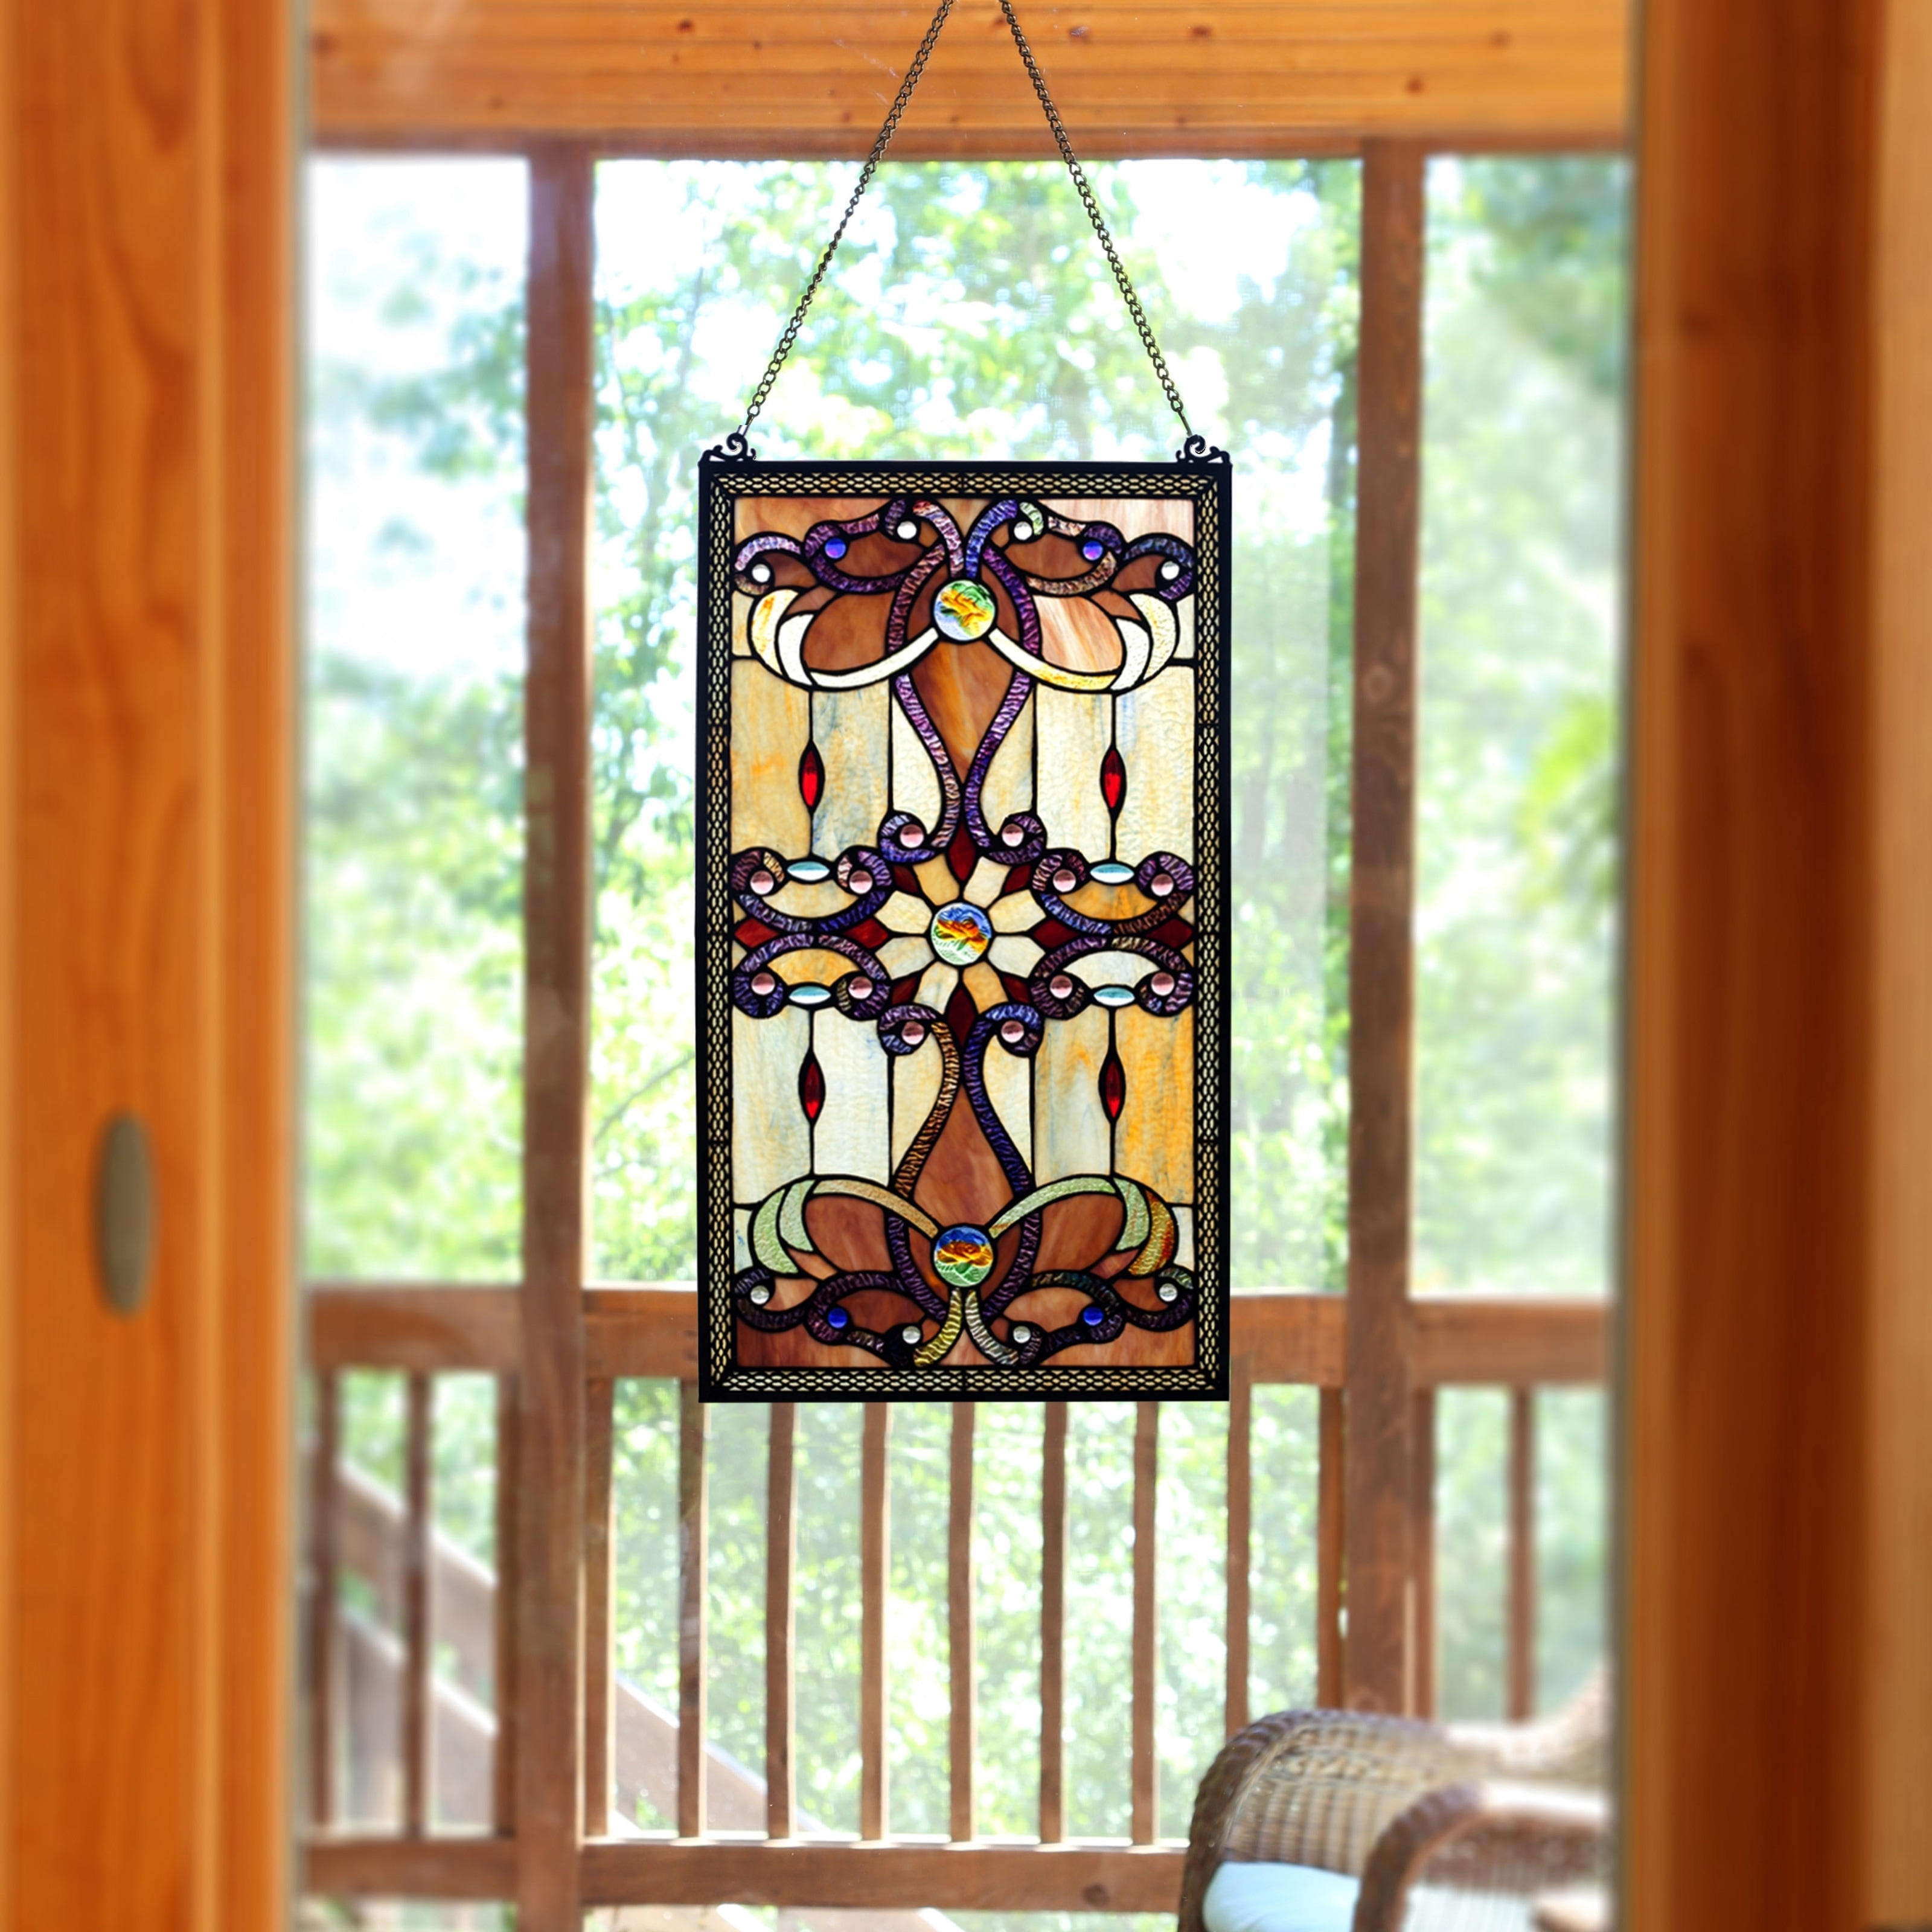 c923723cf14dc9 Shop River of Goods Brandi s Amber Stained Glass 26-inch Window ...